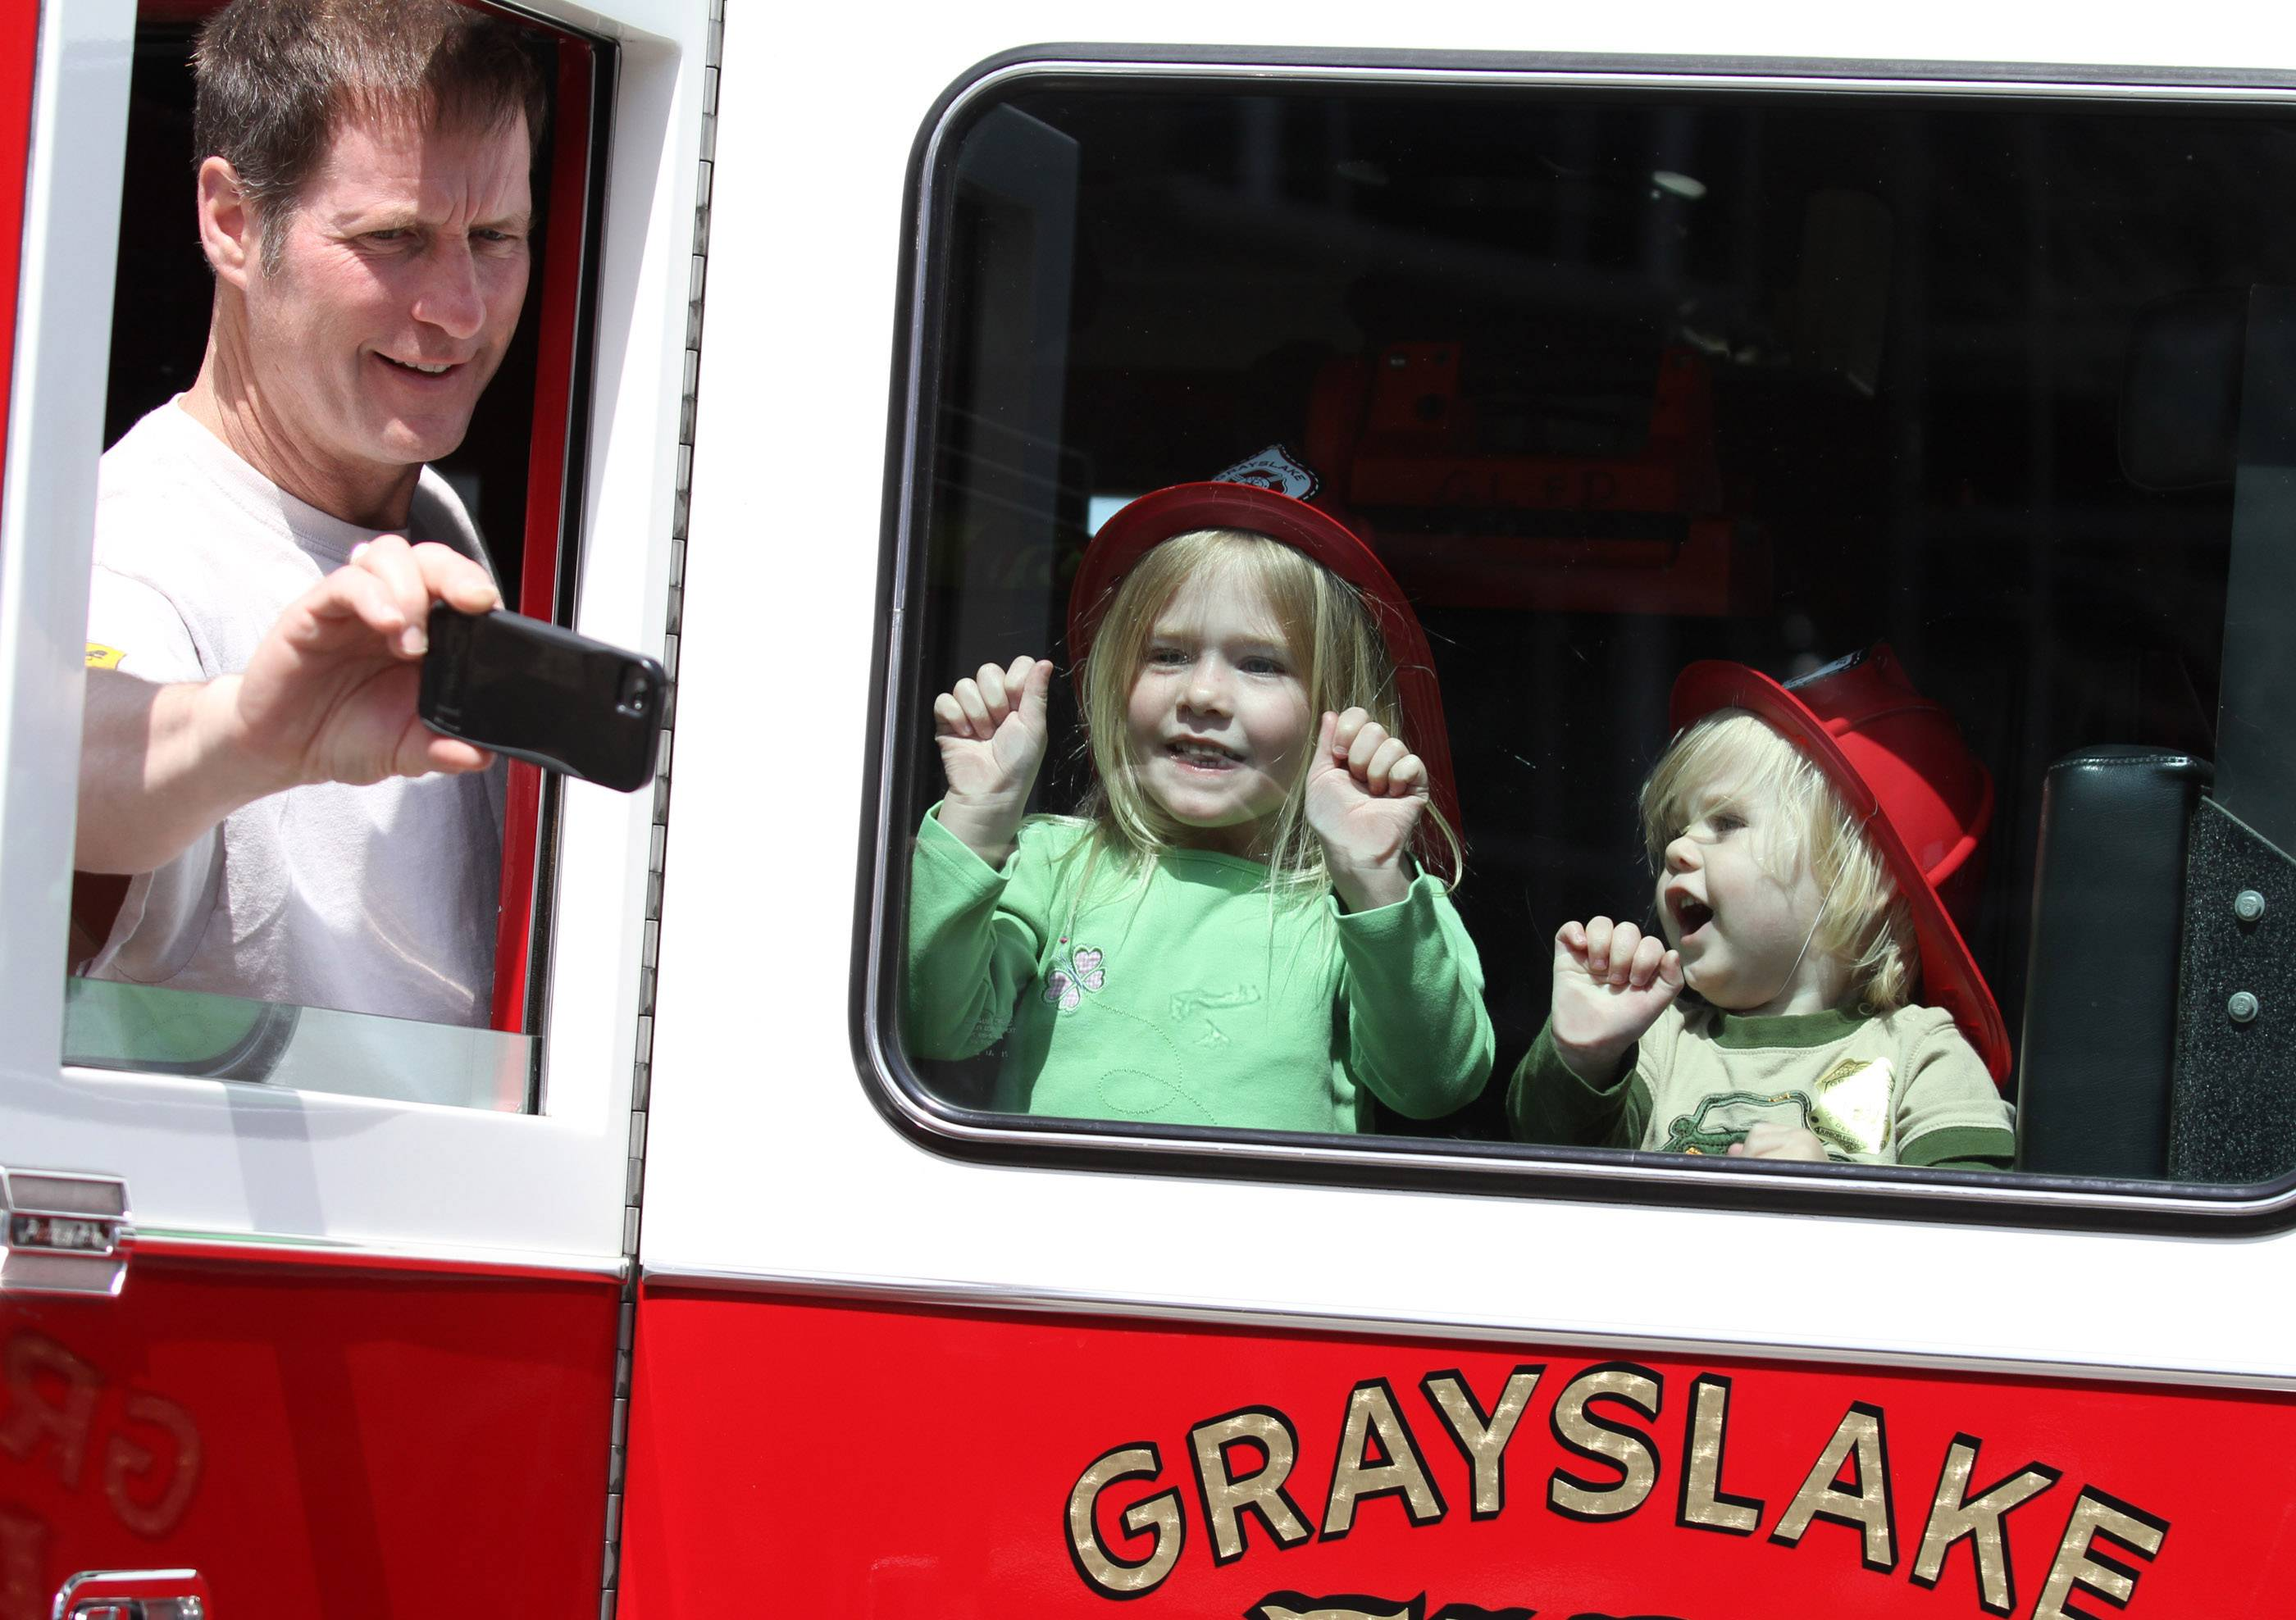 Mark Pratt takes a selfie with his daughter Katie, 4, and son William, 1, in a Grayslake fire truck at Northwestern Grayslake's annual Children's Health and Safety Fair at Northwestern Grayslake Outpatient Center on Saturday in Grayslake.